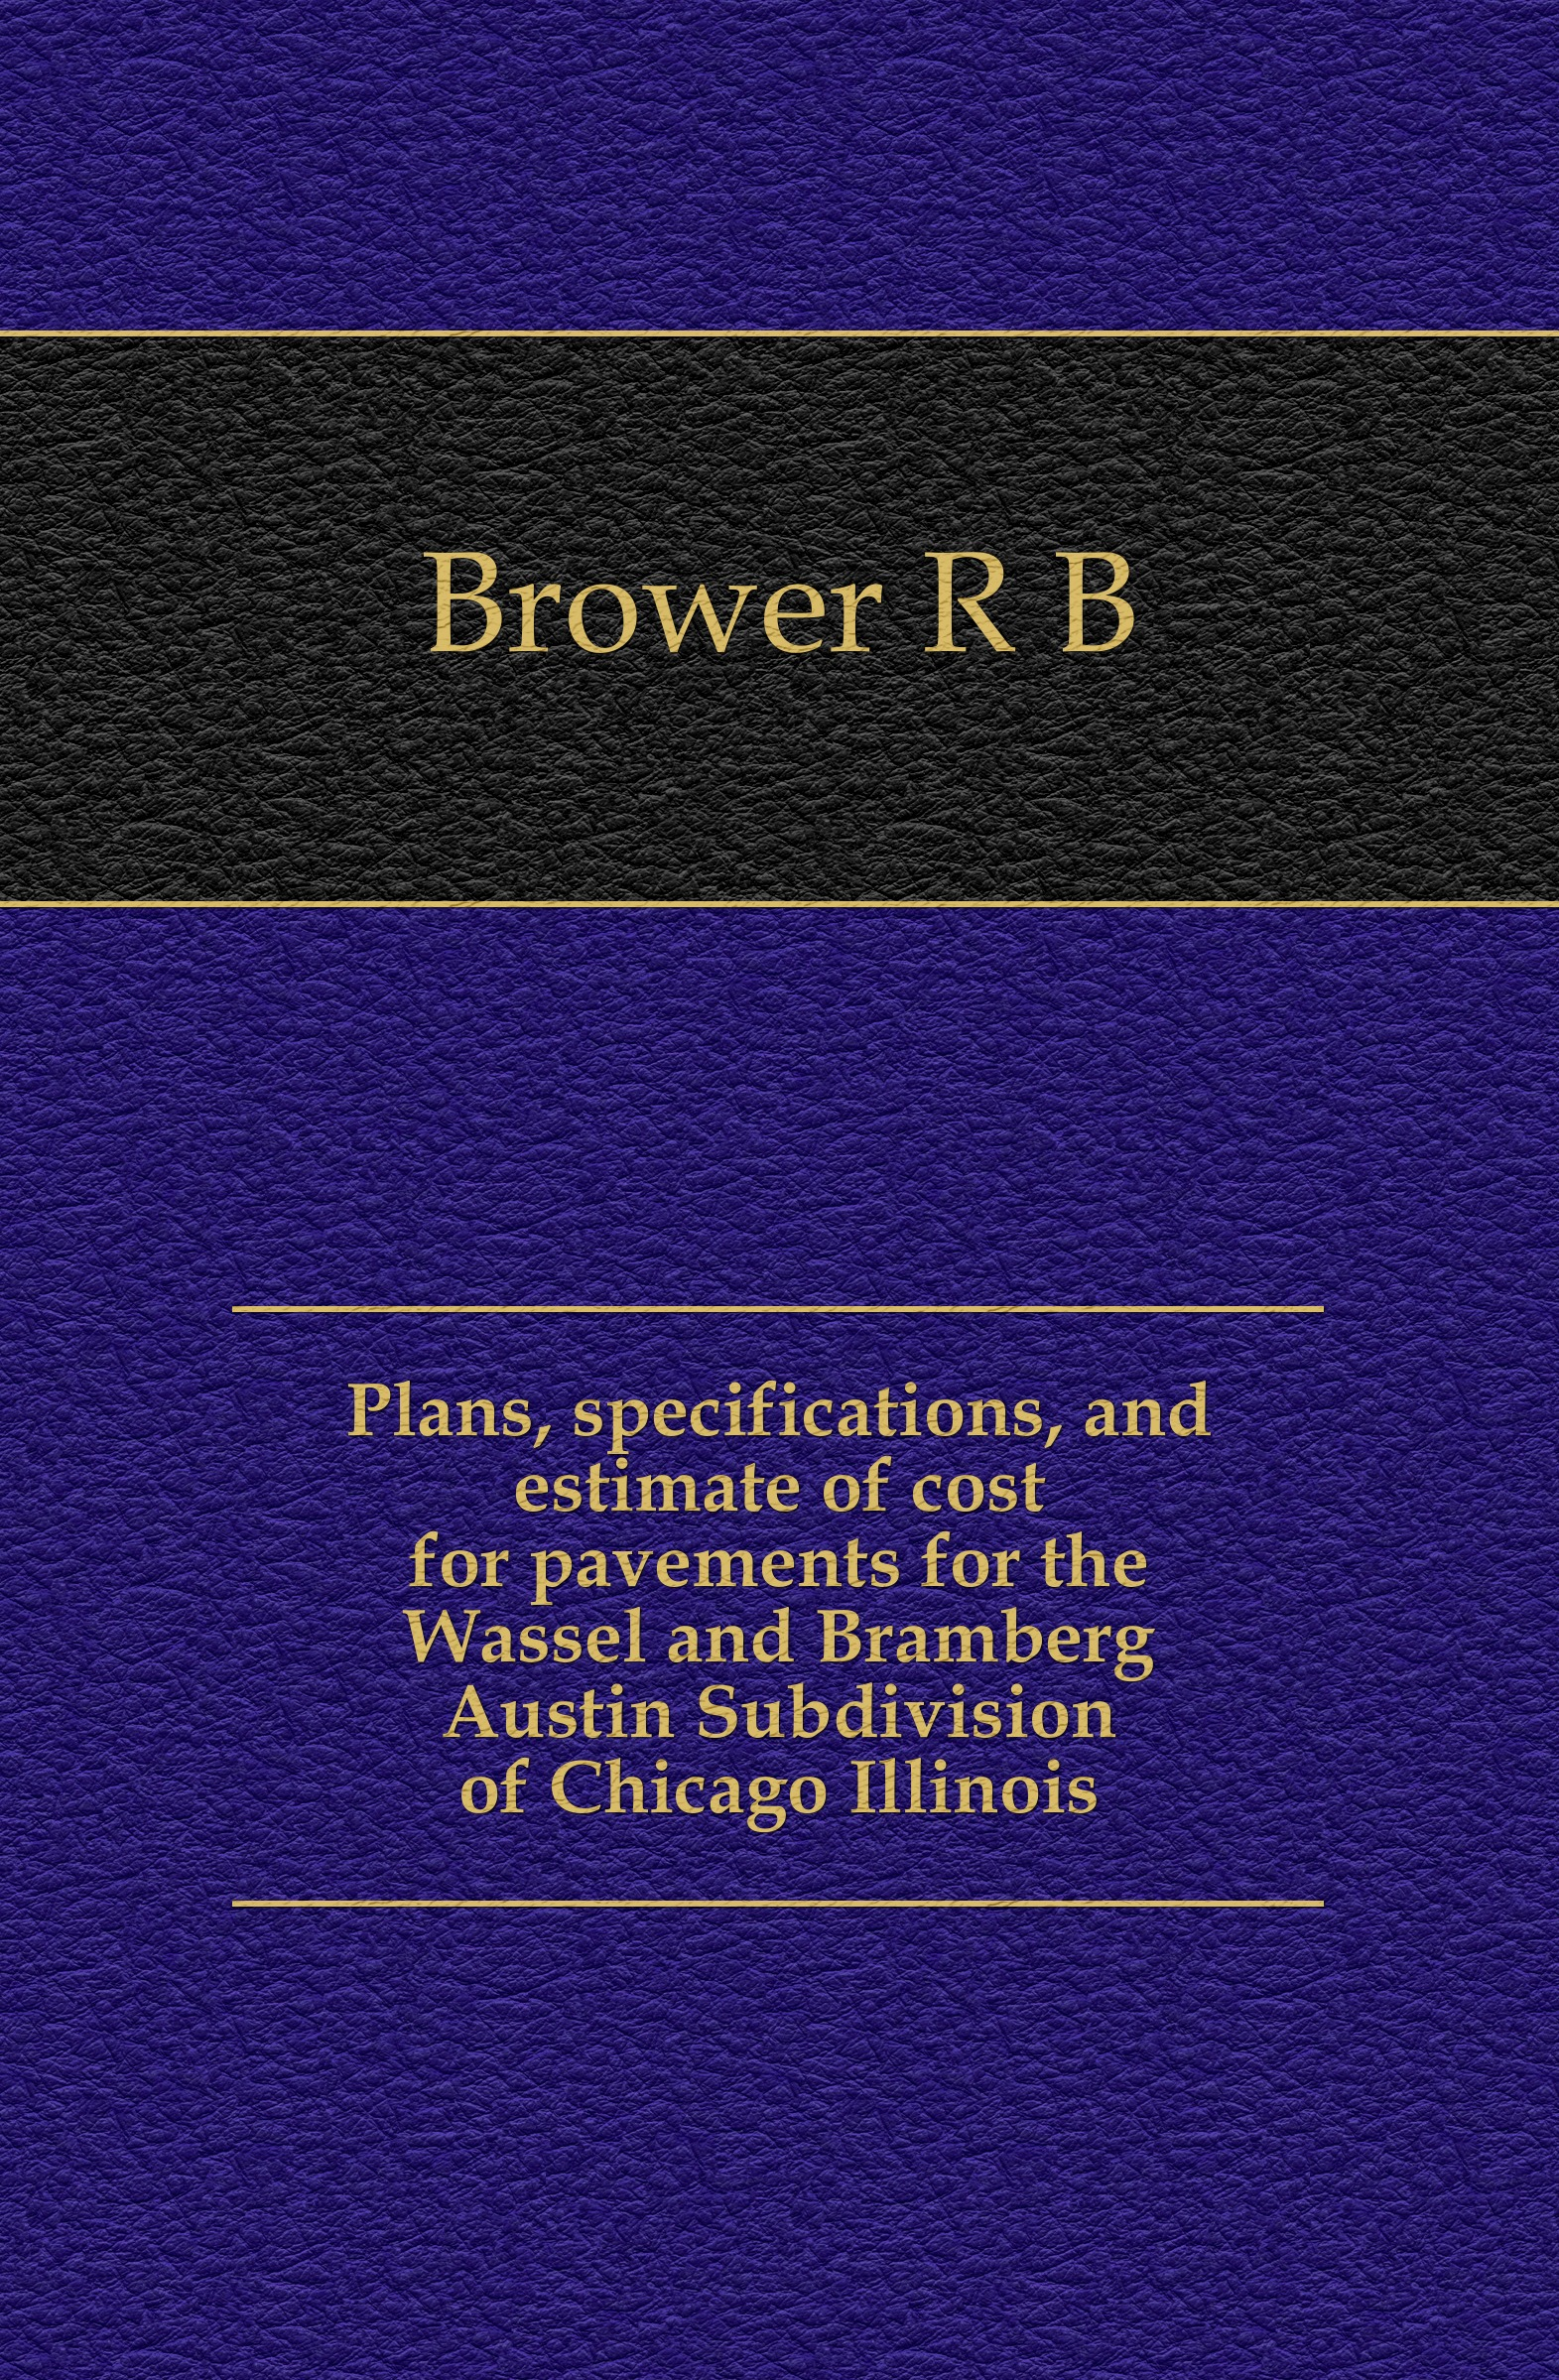 R. B. Brower Plans, specifications, and estimate of cost for pavements for the Wassel and Bramberg Austin Subdivision of Chicago Illinois r austin freeman osirise silm